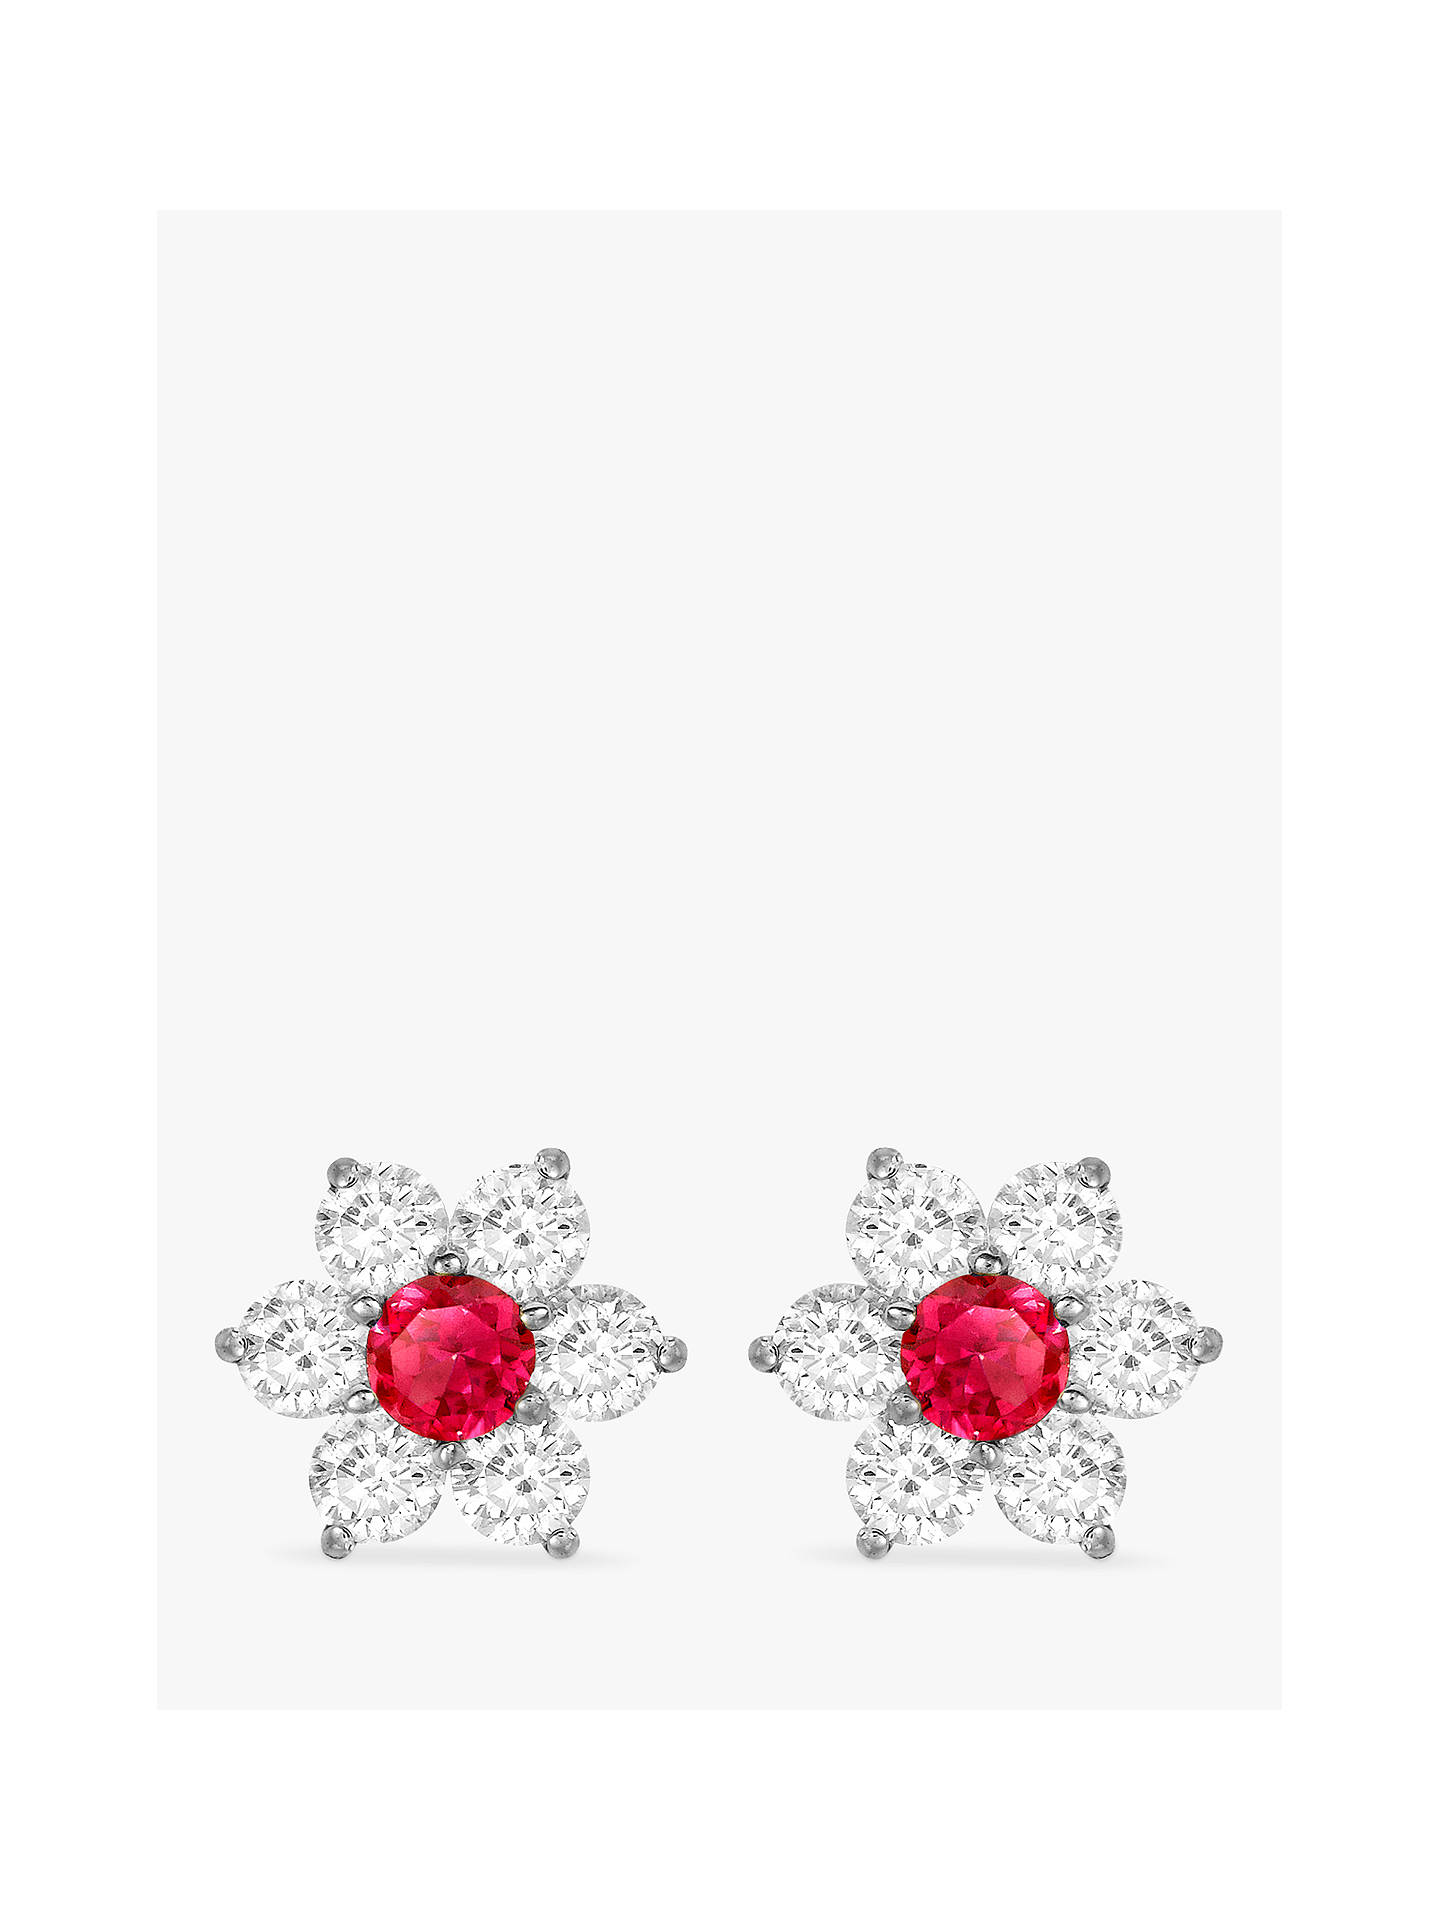 a33d3ee44ae76 IBB 9ct White Gold Flower Cluster Stud Earrings, White/Red